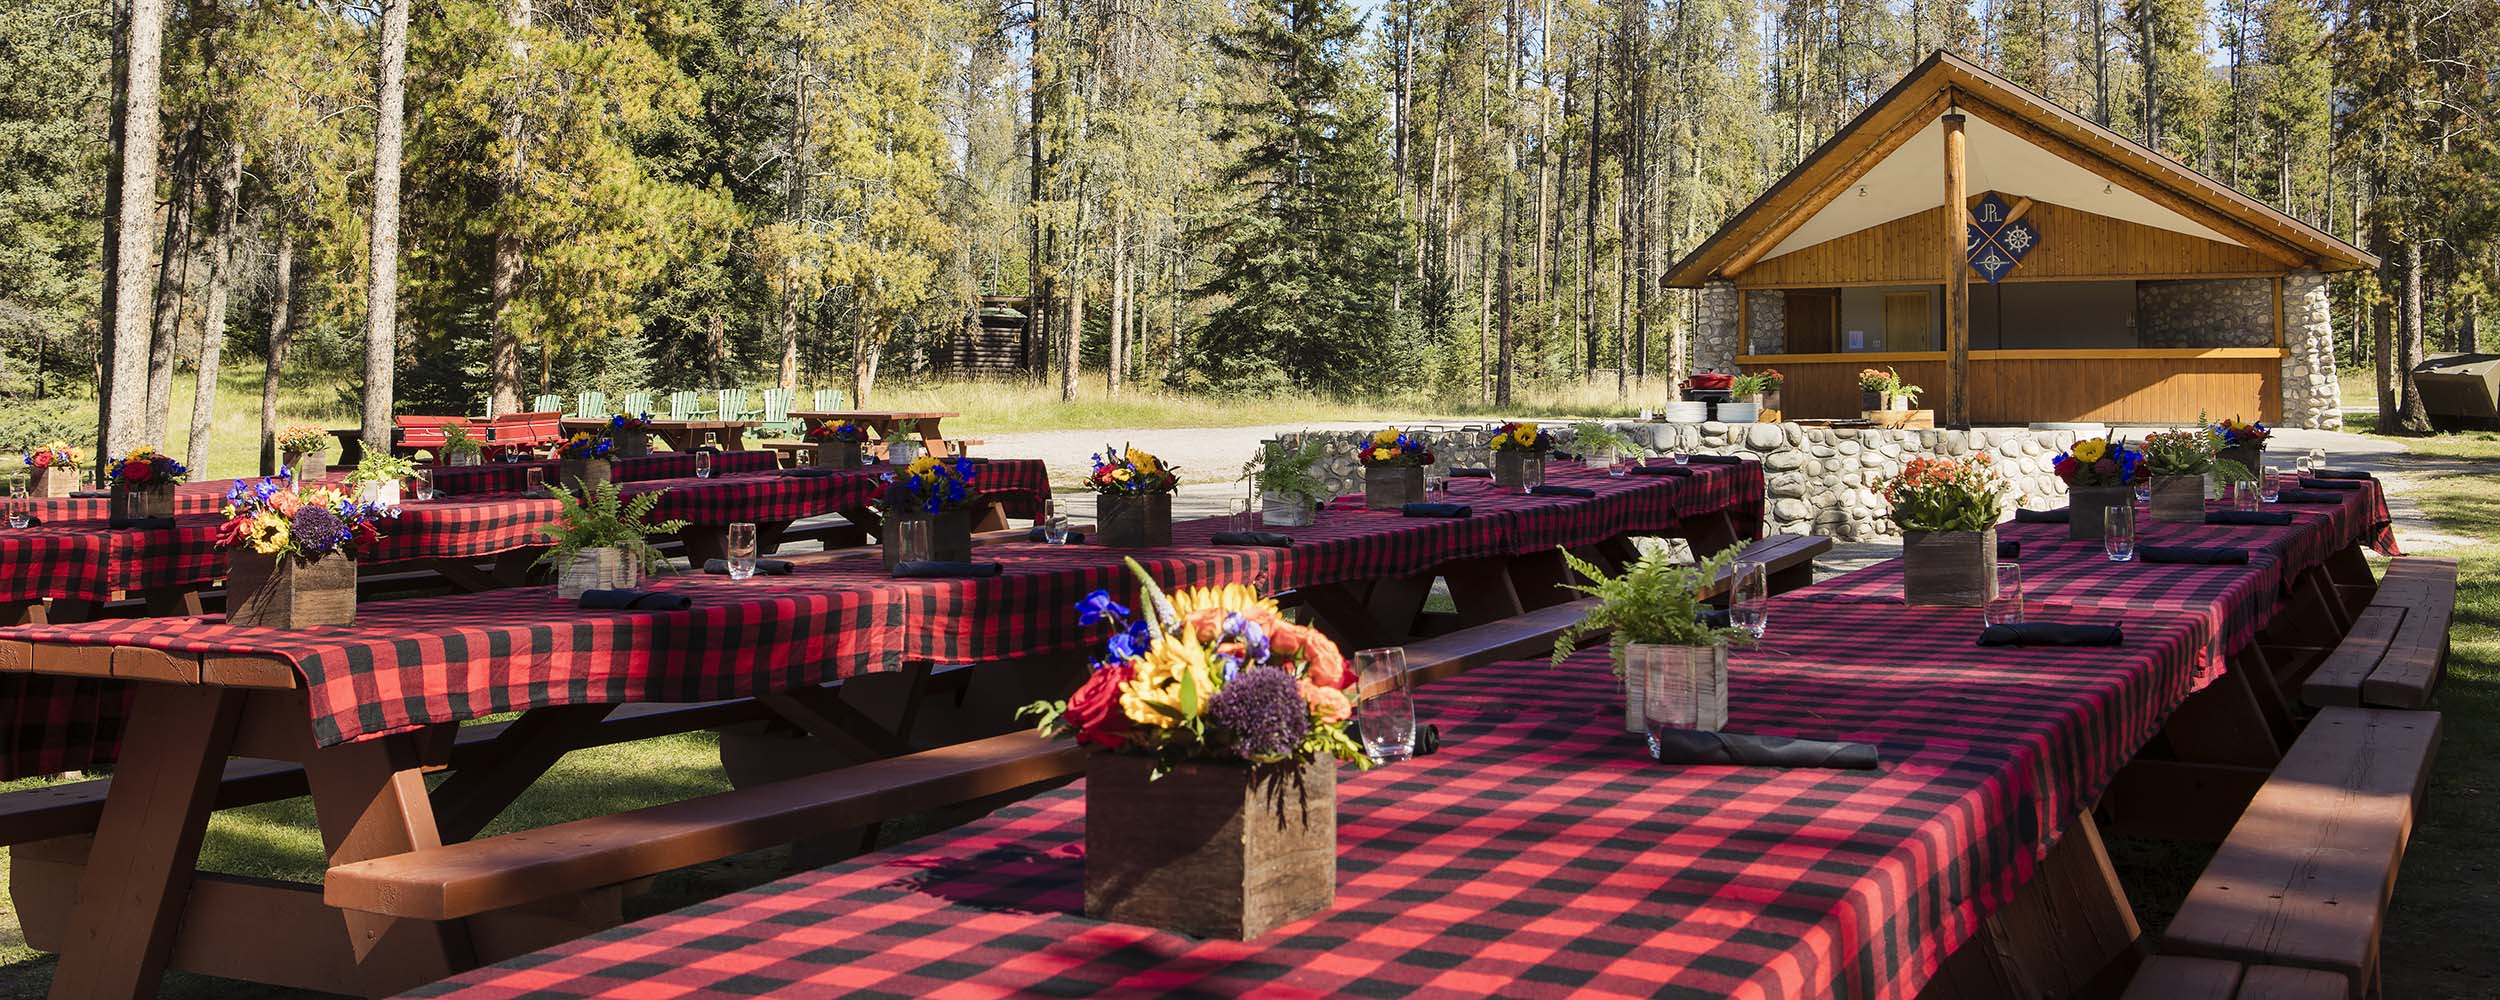 Picnic tables setup at Trefoil Lake for an outdoor BBQ